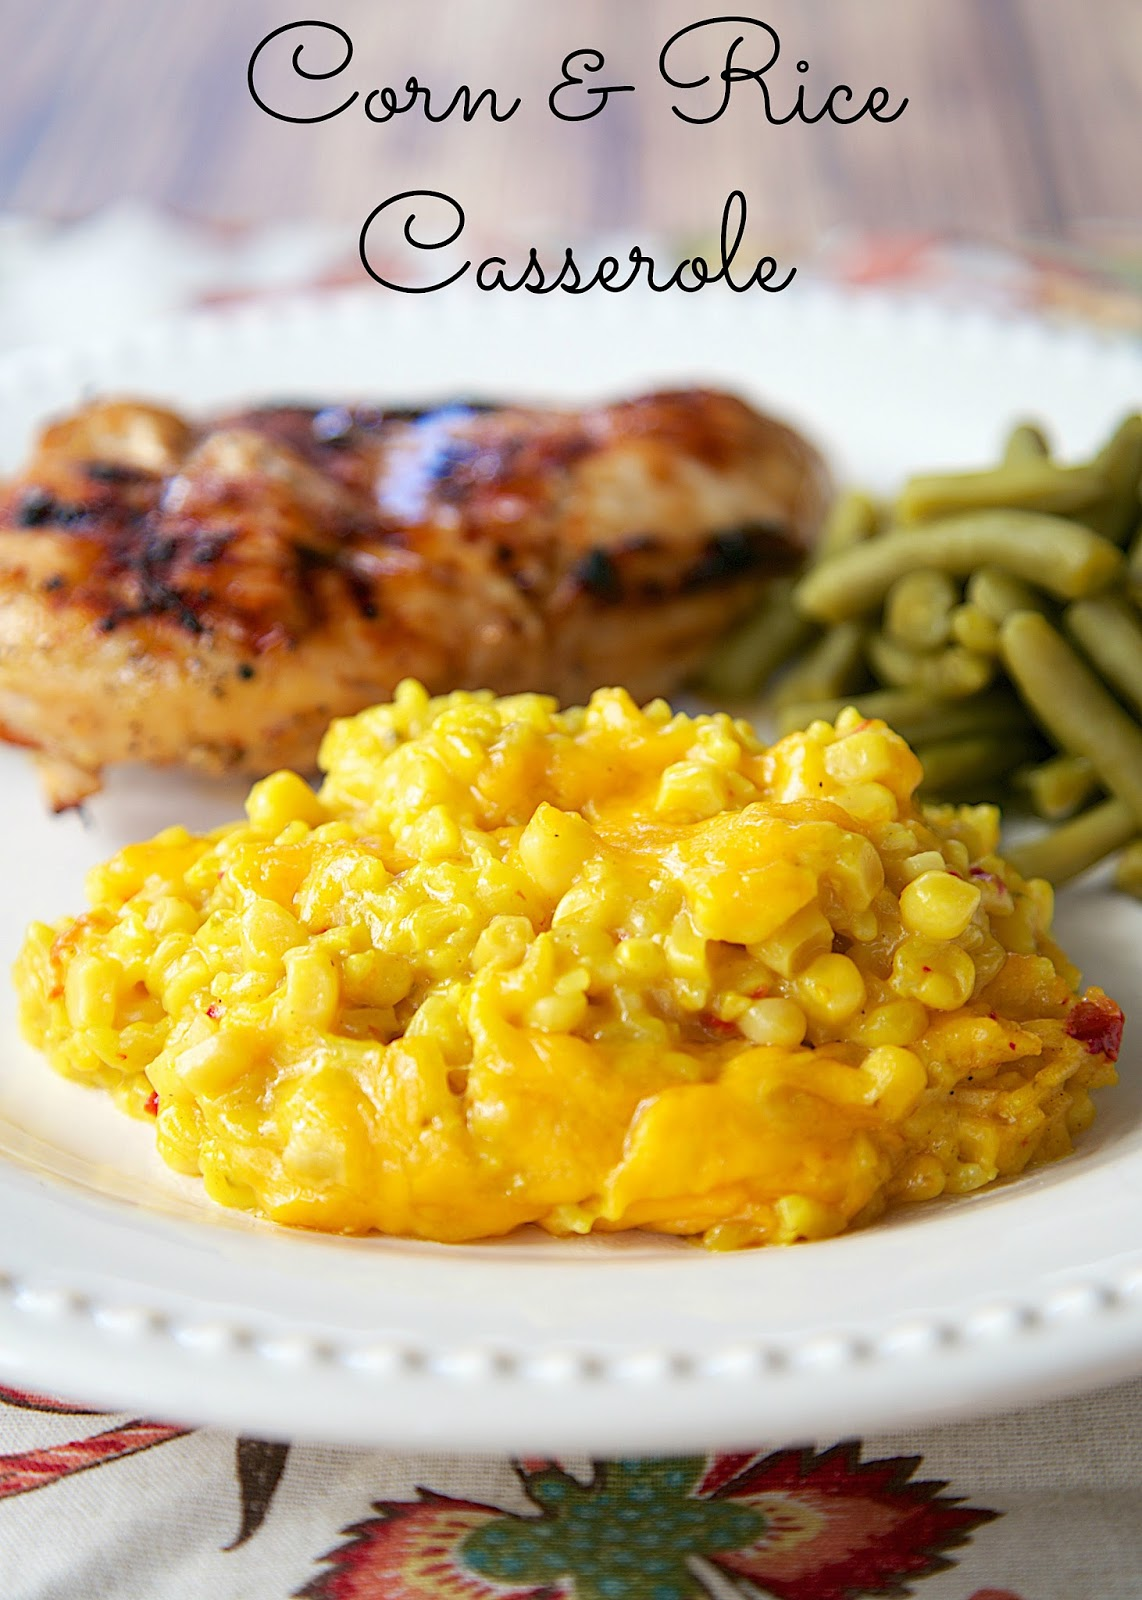 Corn and Rice Casserole - only 4 ingredients! Chicken, Rice, Soup & Cheese. It is THE BEST corn casserole I've ever eaten! Can be made ahead of time. Quick side dish recipe!